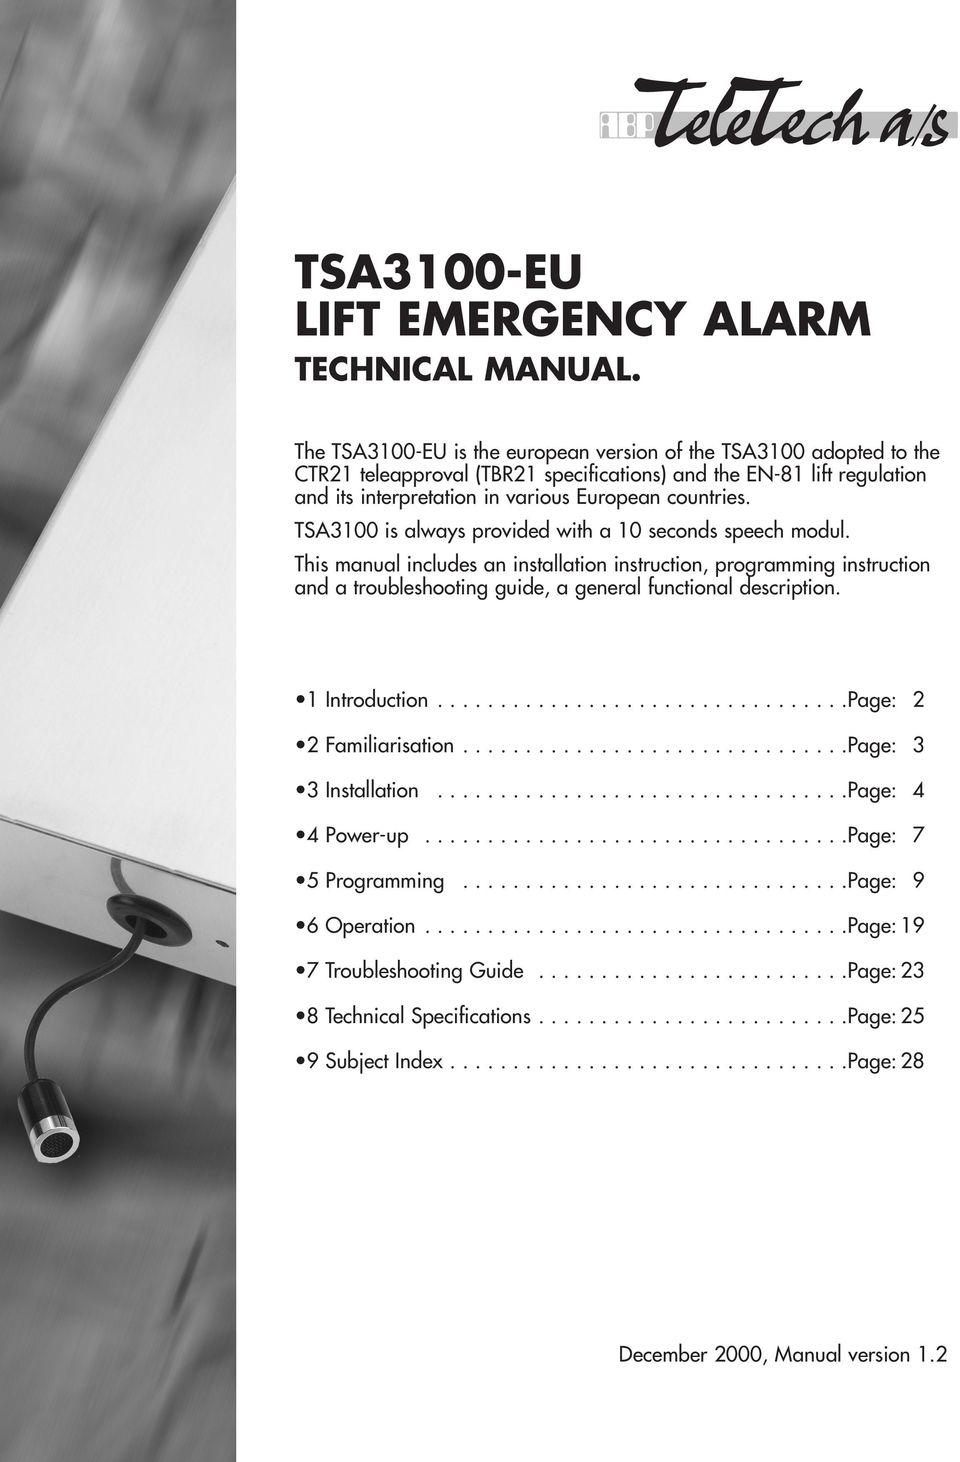 TSA3100 is always provided with a 10 seconds speech modul. This manual includes an installation instruction, programming instruction and a troubleshooting guide, a general functional description.